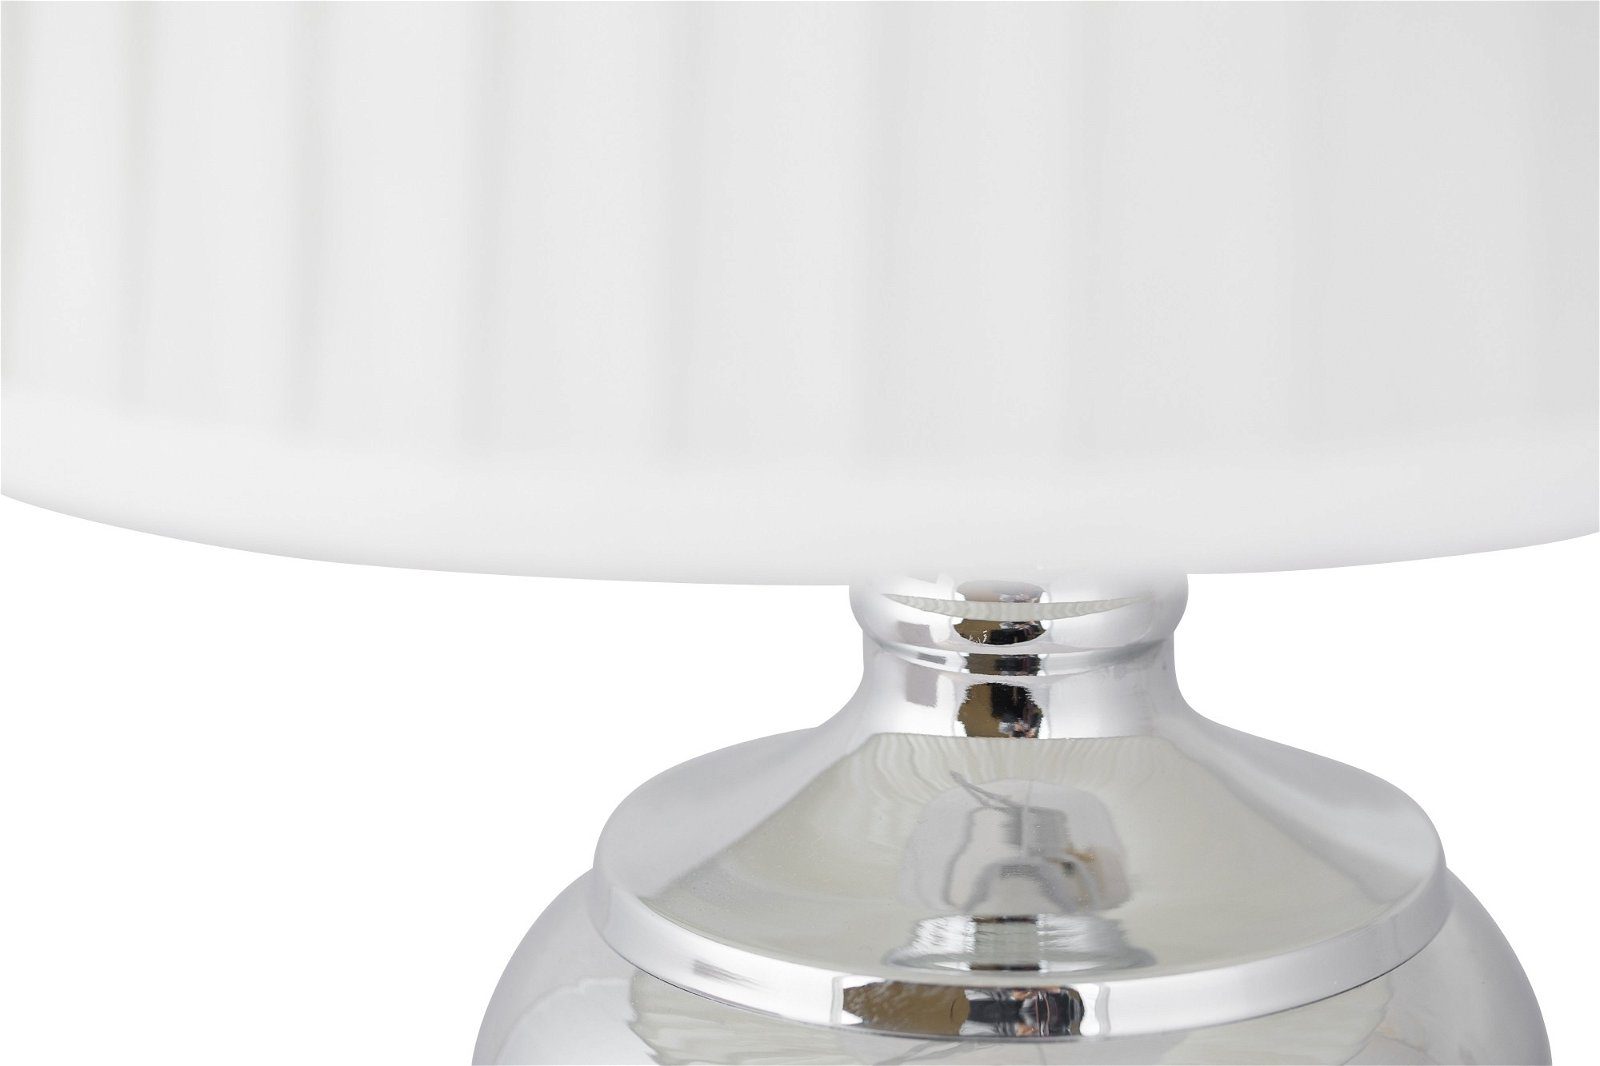 58cm Urn Style Table Lamp in Polished